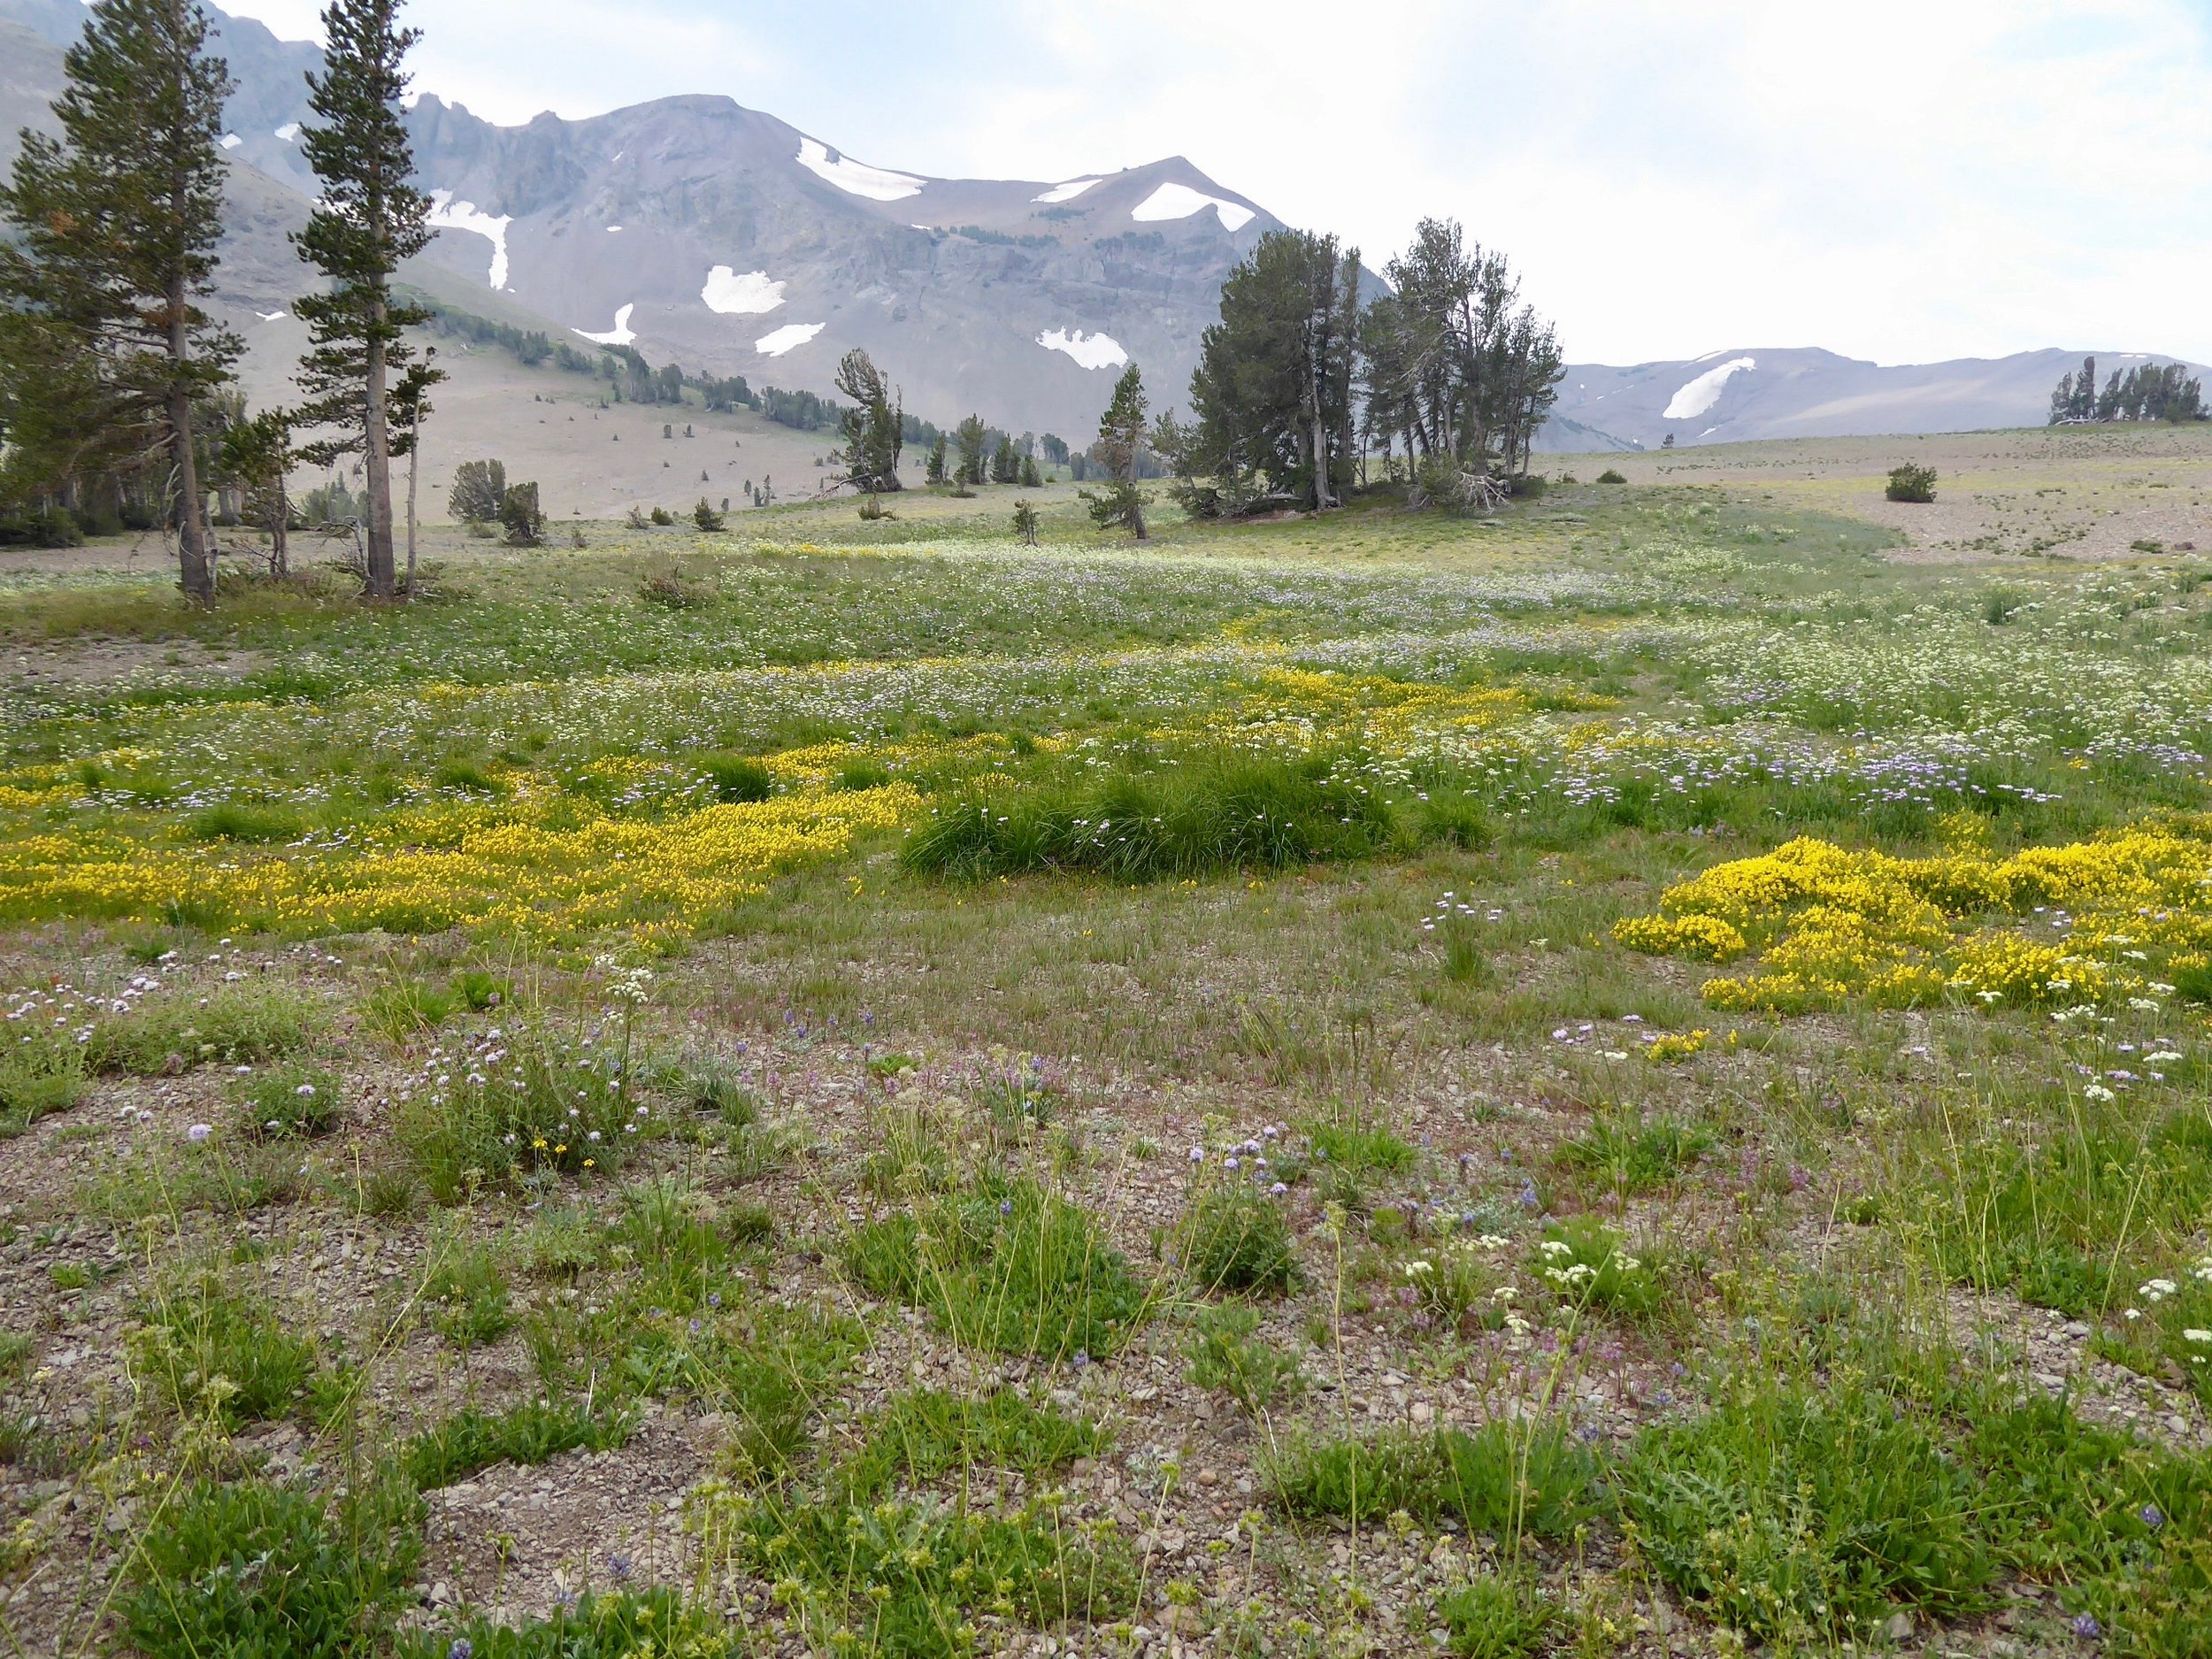 Wildflowers are abundant along the trail